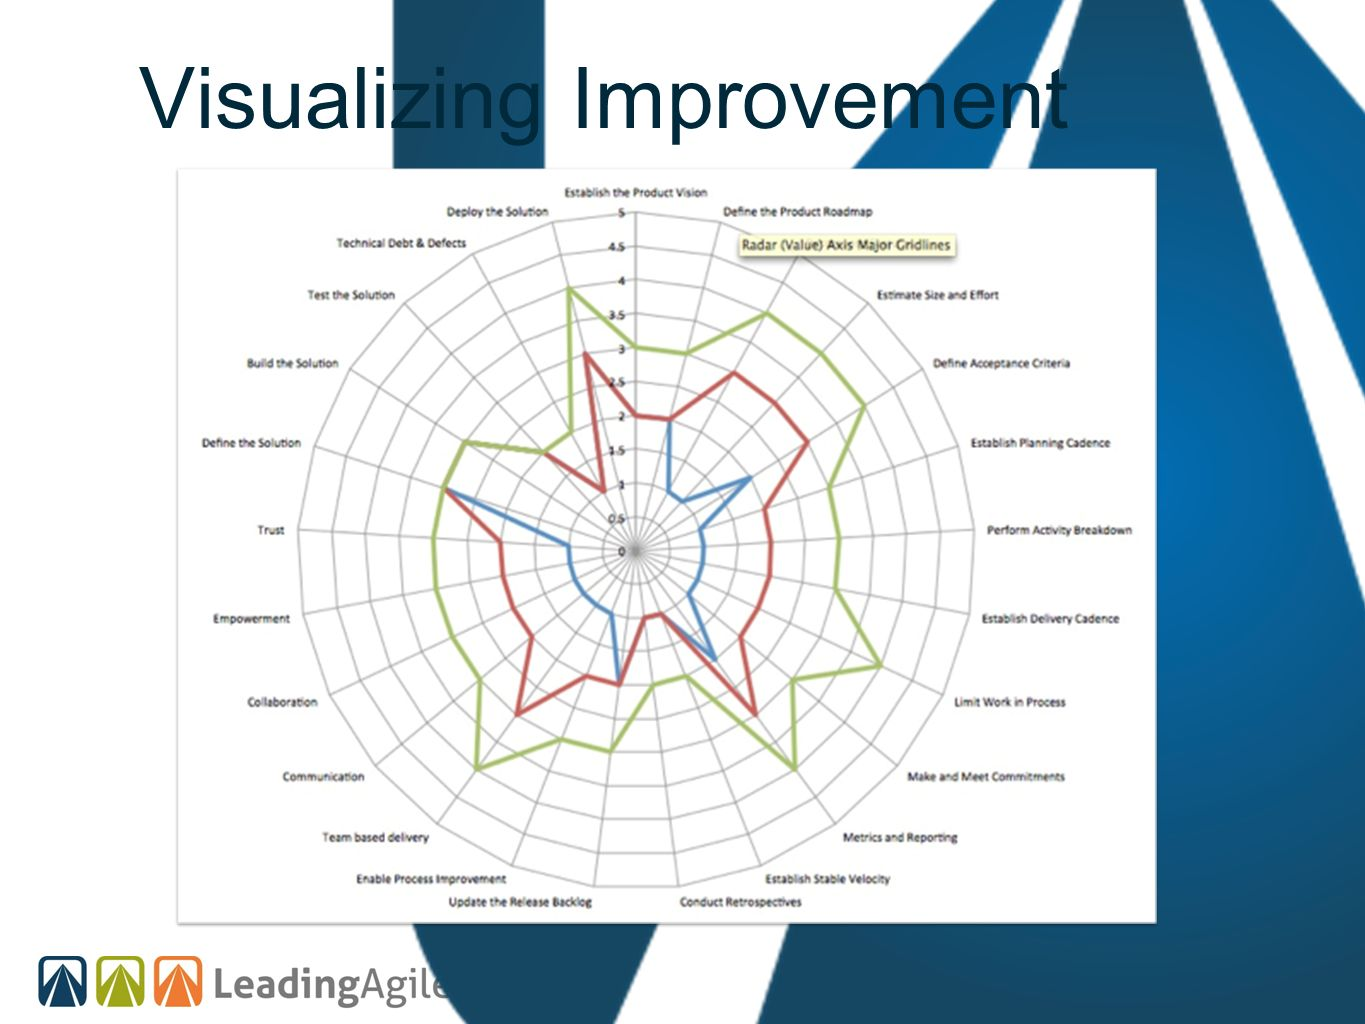 Visualizing Improvement